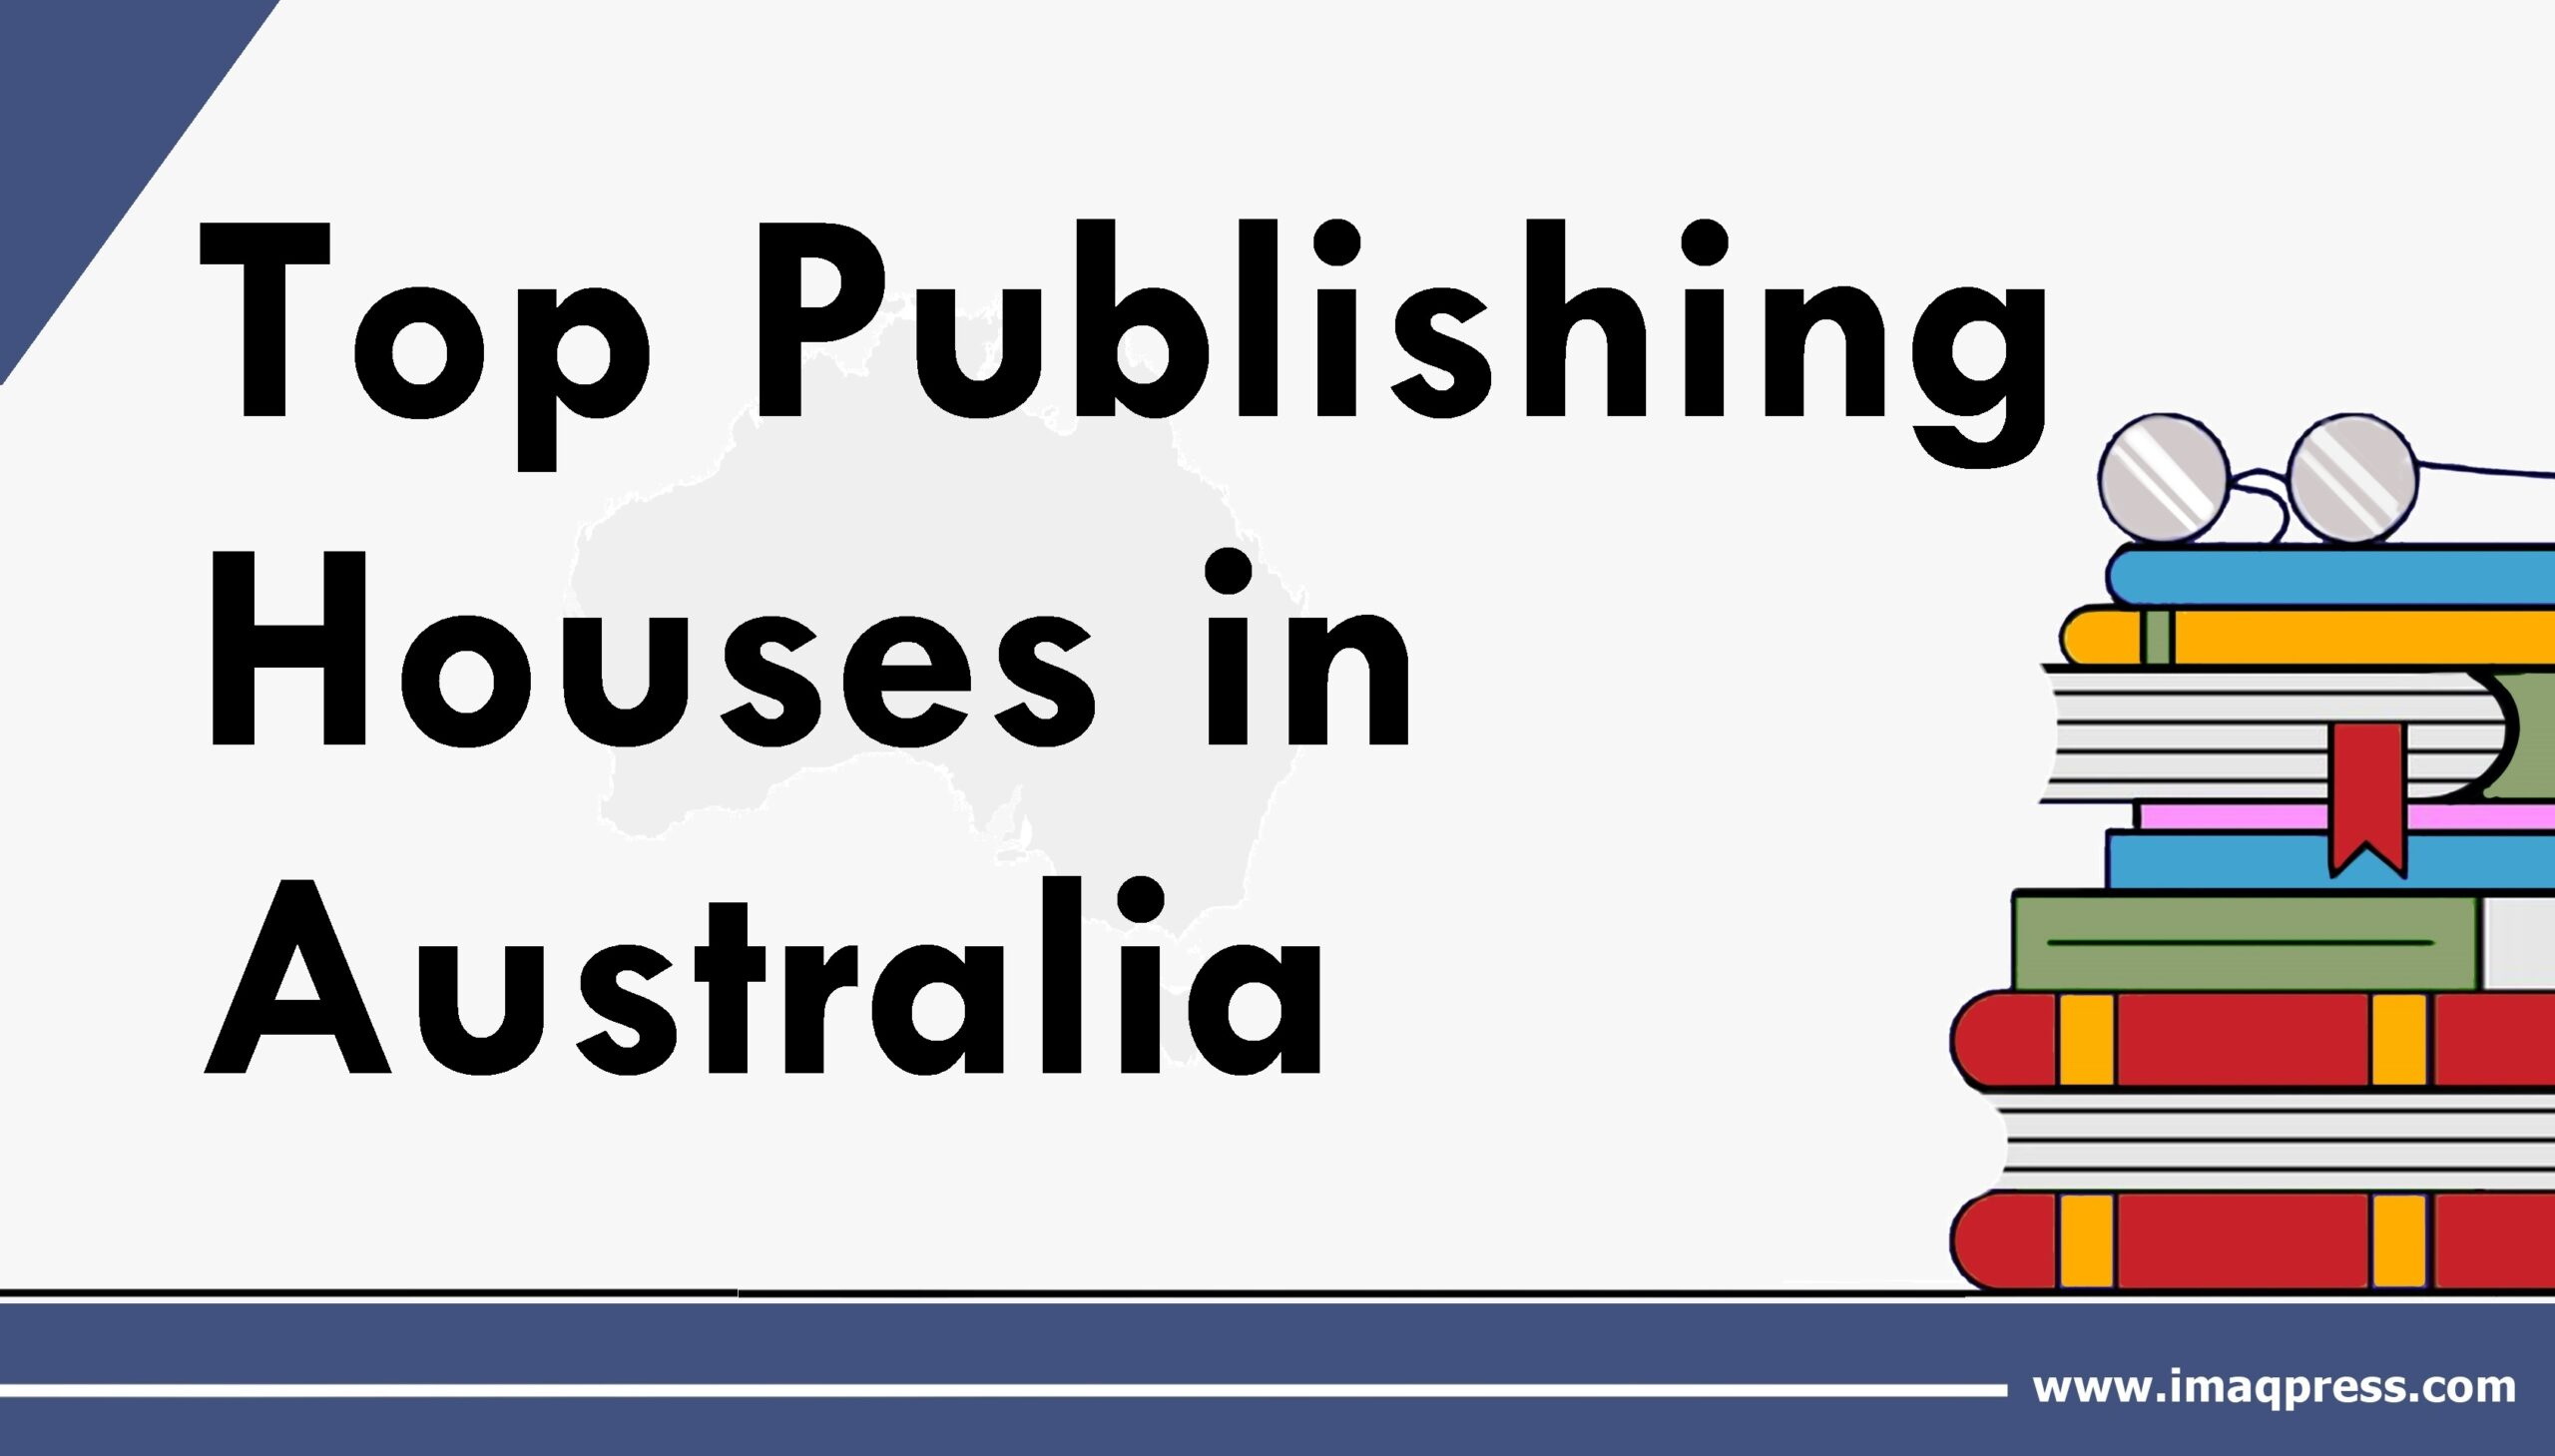 Top Publishing Houses in Australia – A 2021 Update